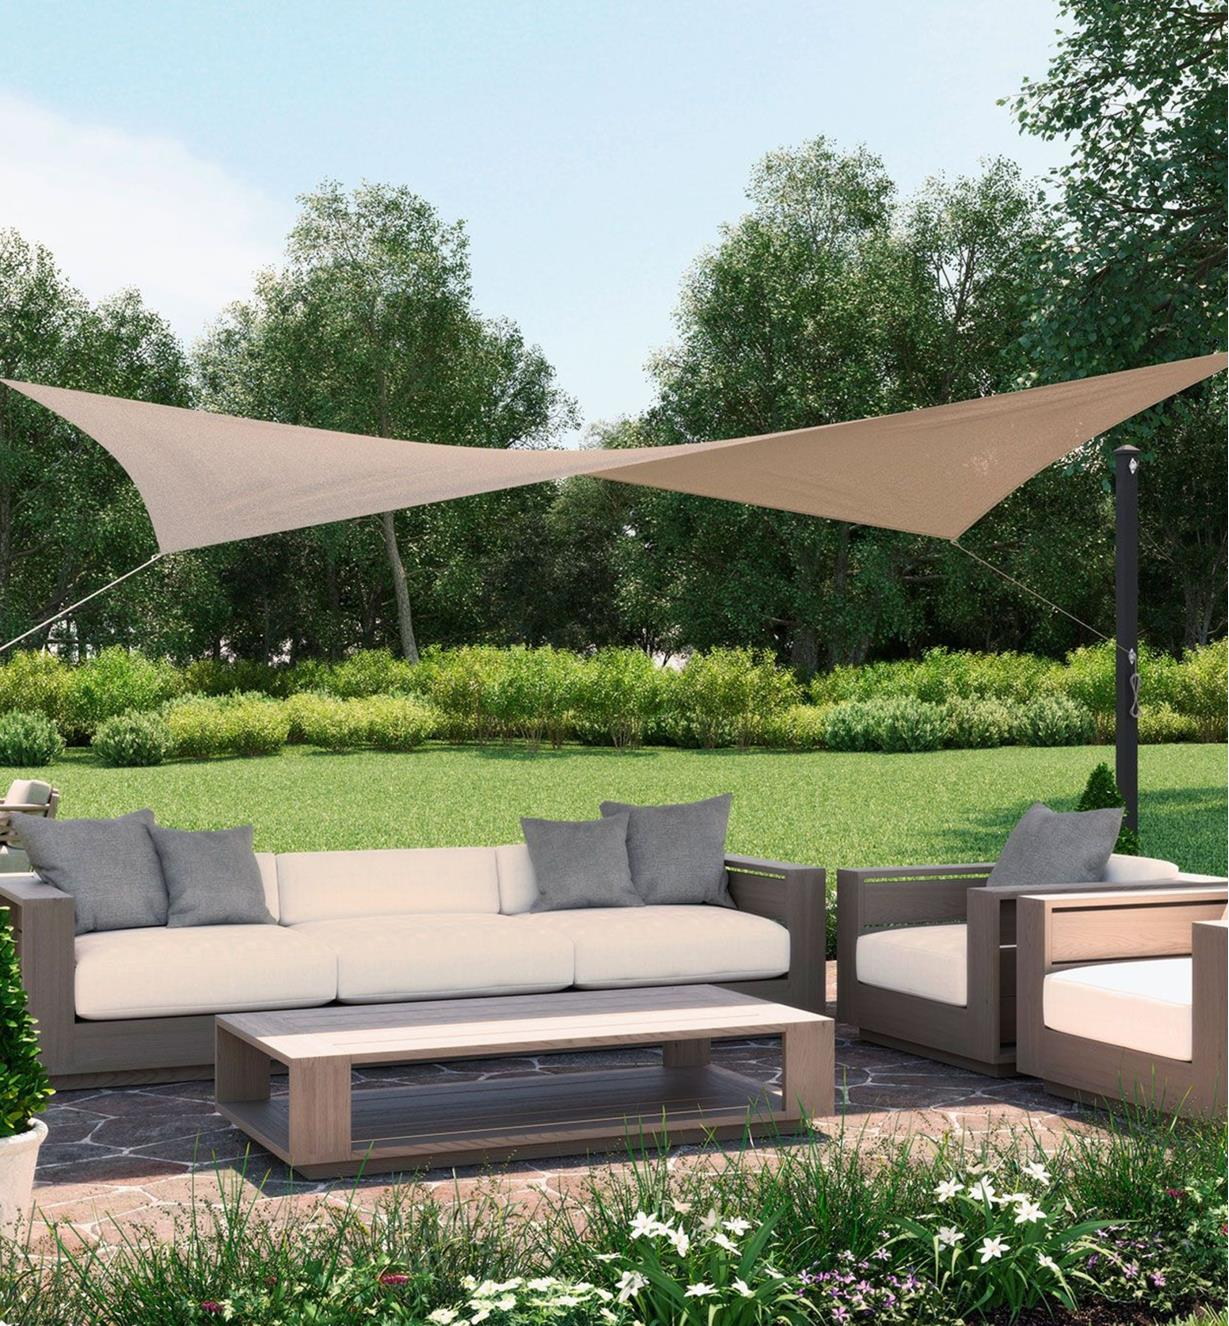 A square shade sail shades a patio seating area